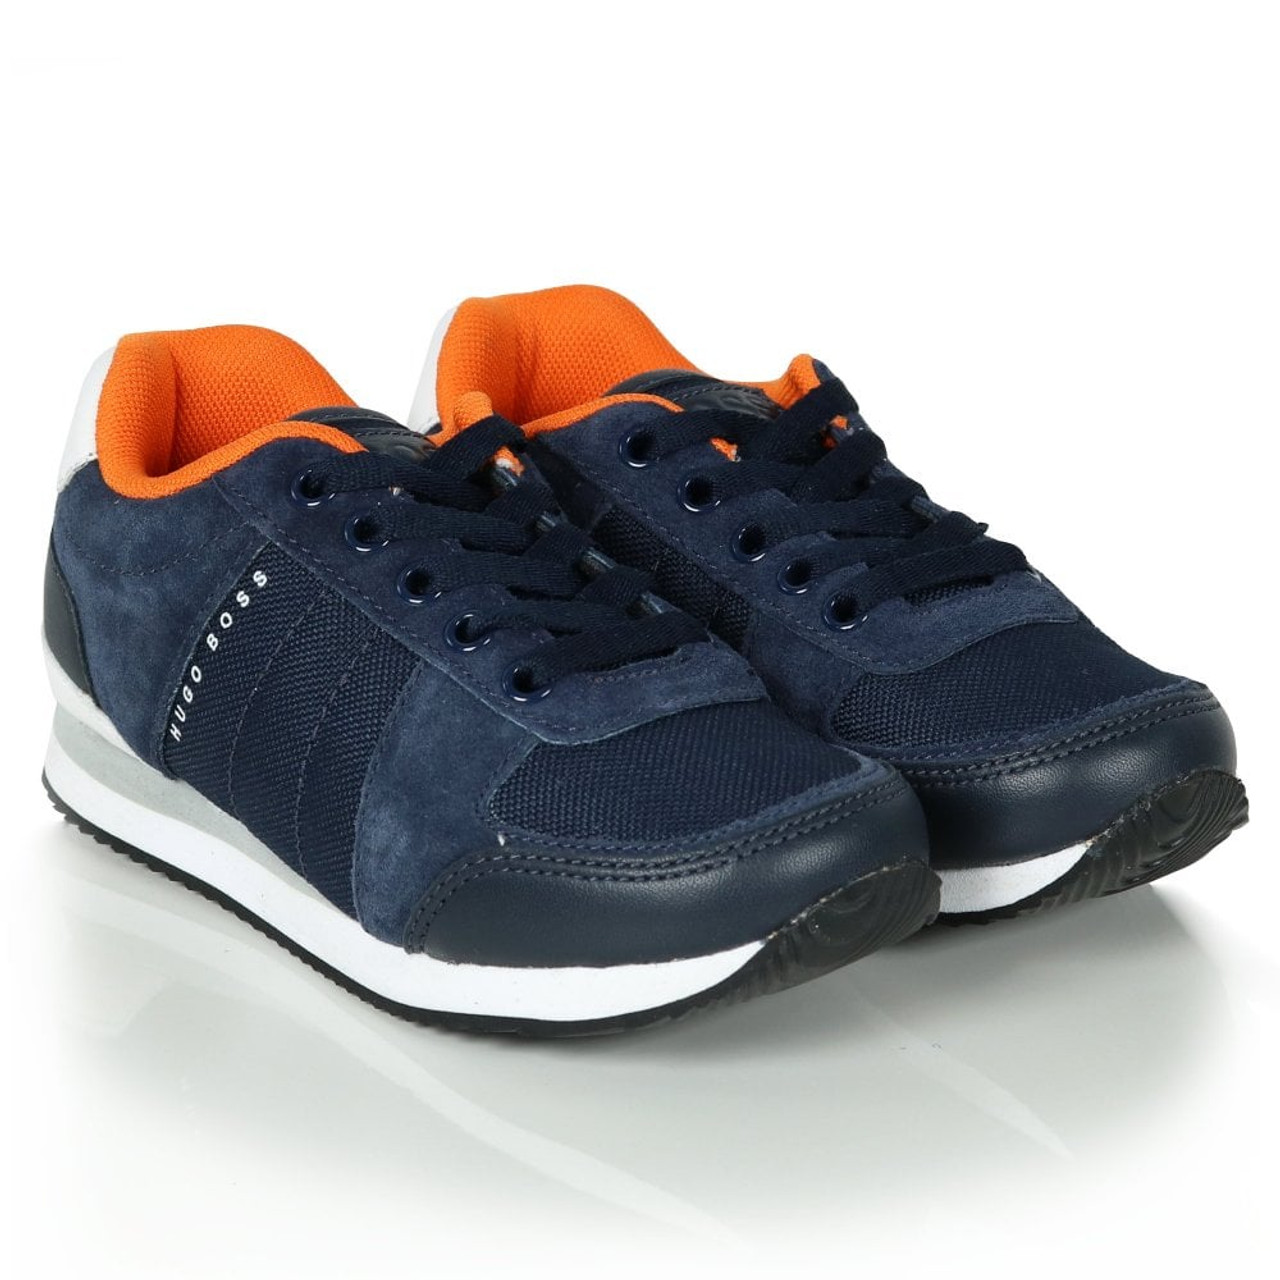 outlet boutique official supplier crazy price HUGO BOSS KIDS BOYS NAVY SUEDE & CANVAS TRAINERS